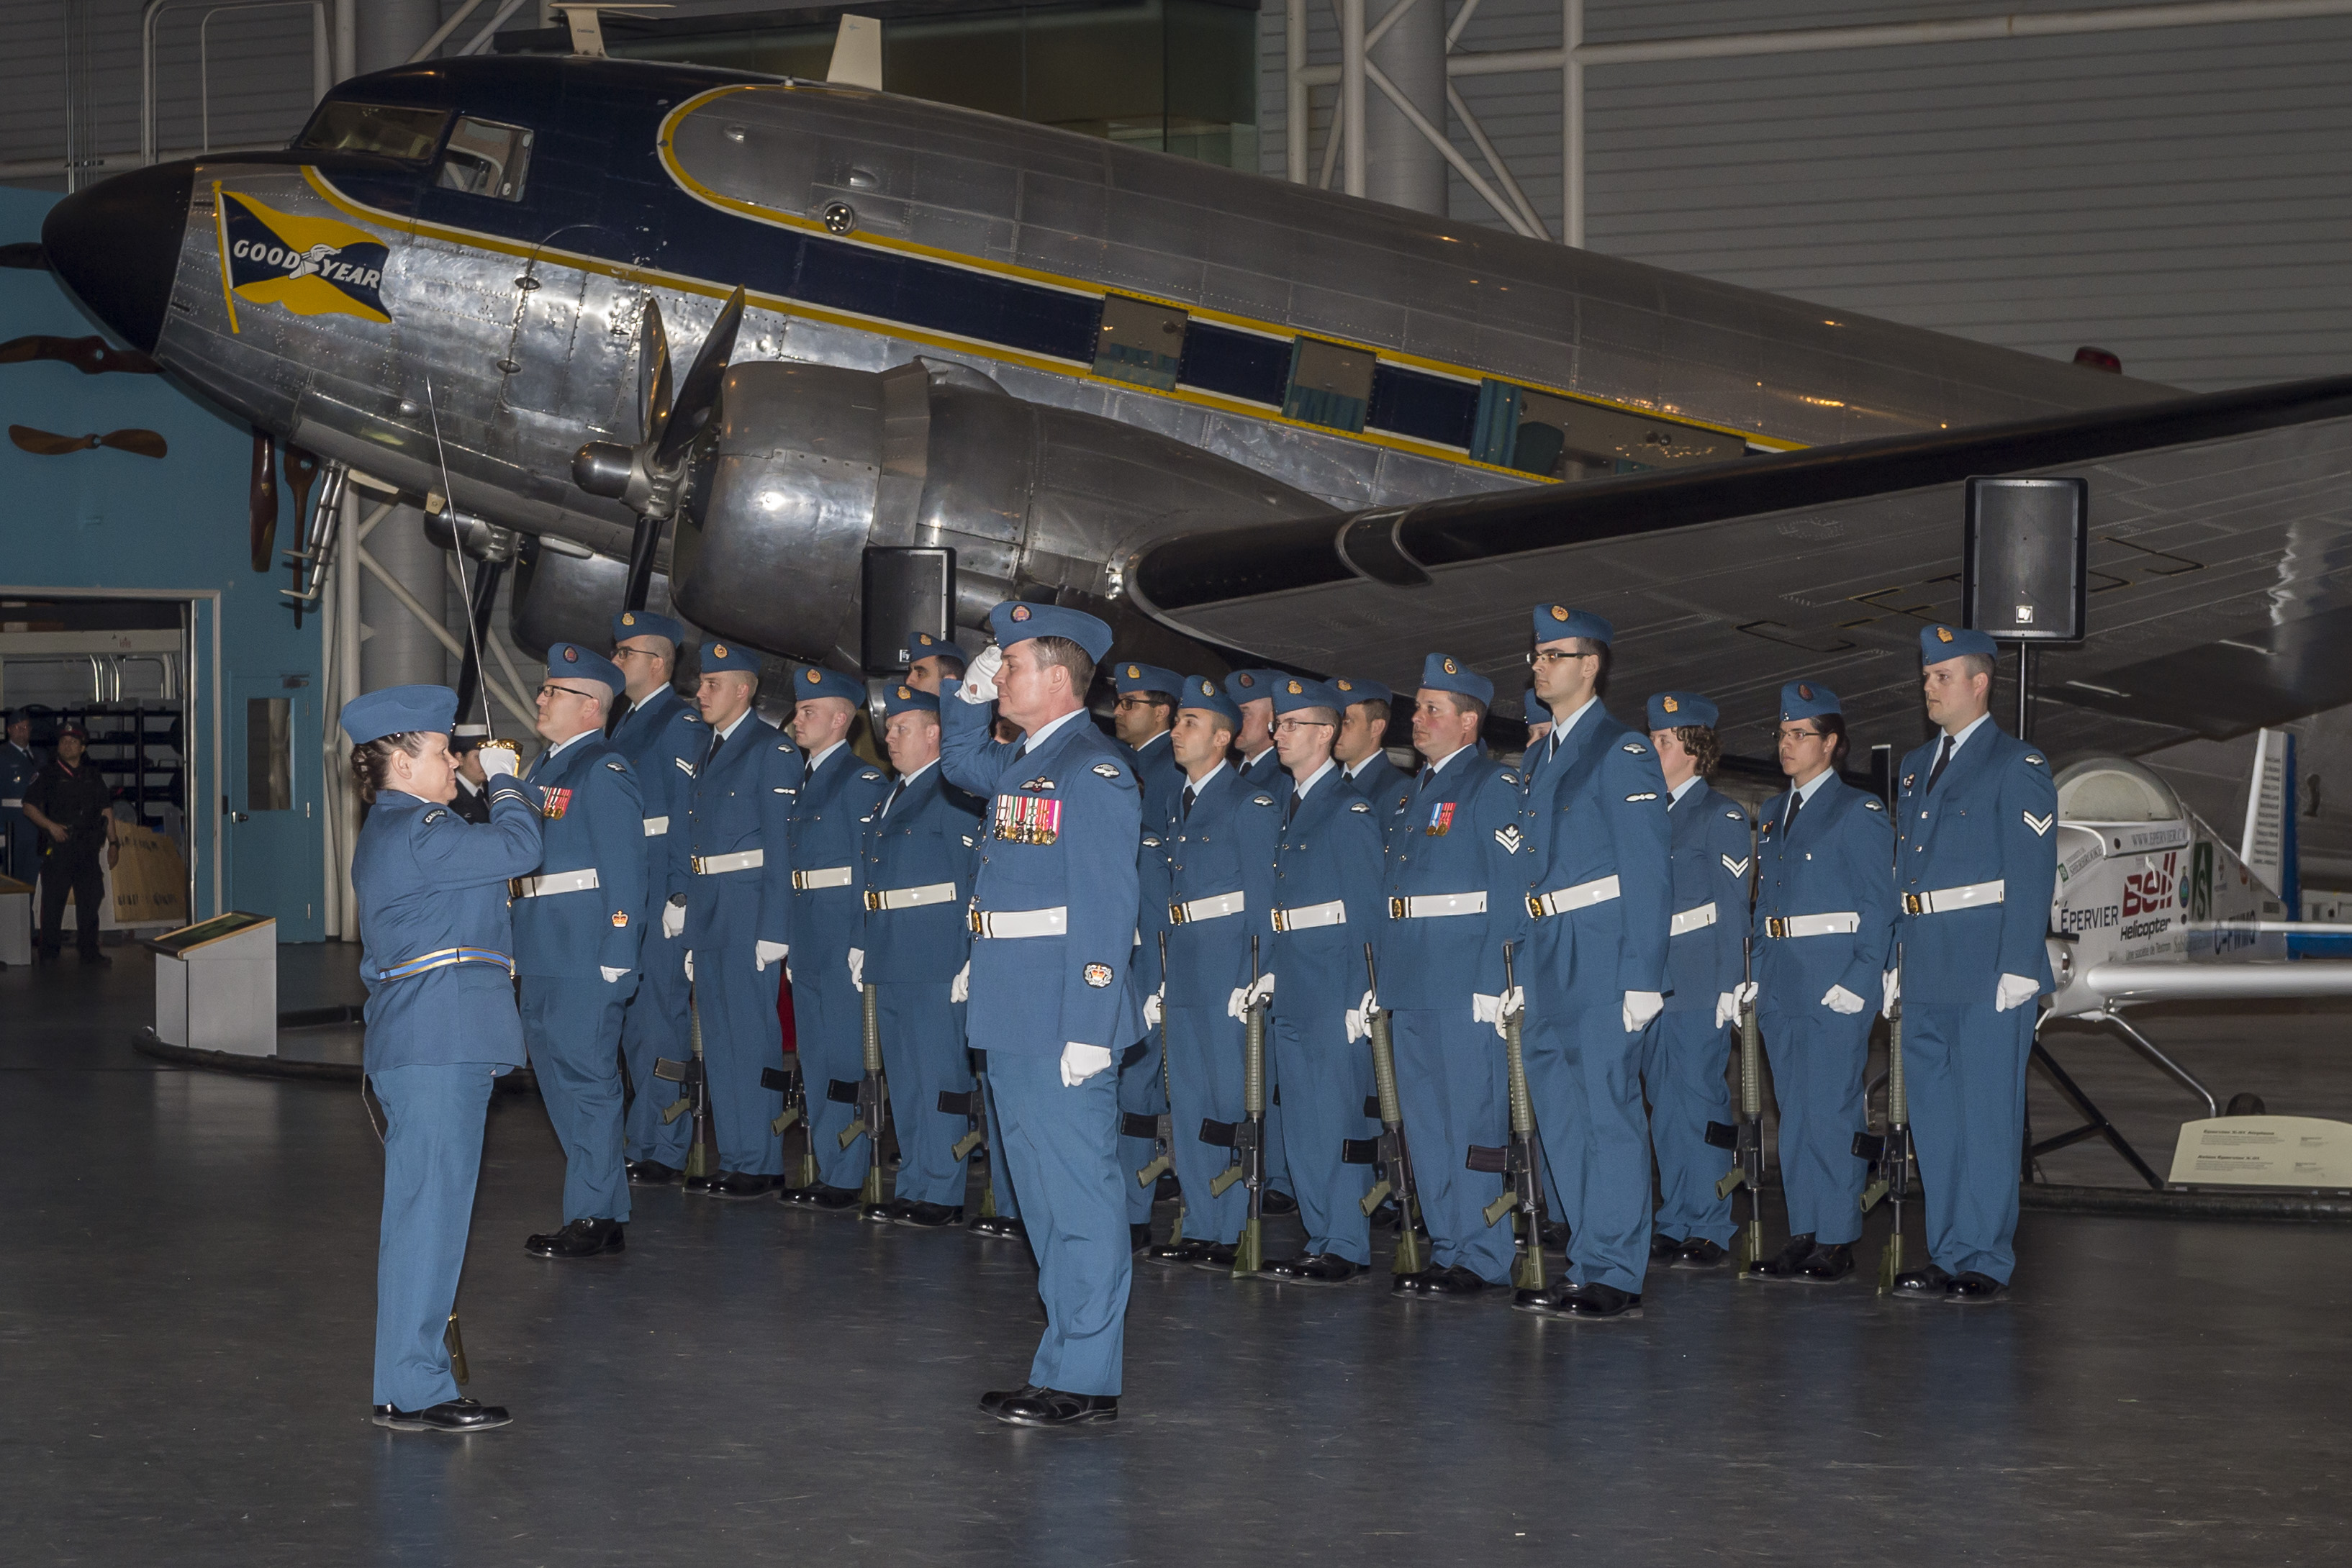 Salutes are exchanged during the Change of Command parade, held at the Canada Aviation and Space Museum in Ottawa. The Change of Command was held inside the museum due to inclement weather. PHOTO: Corporal Alana Morin, FA03-2018-0040-018